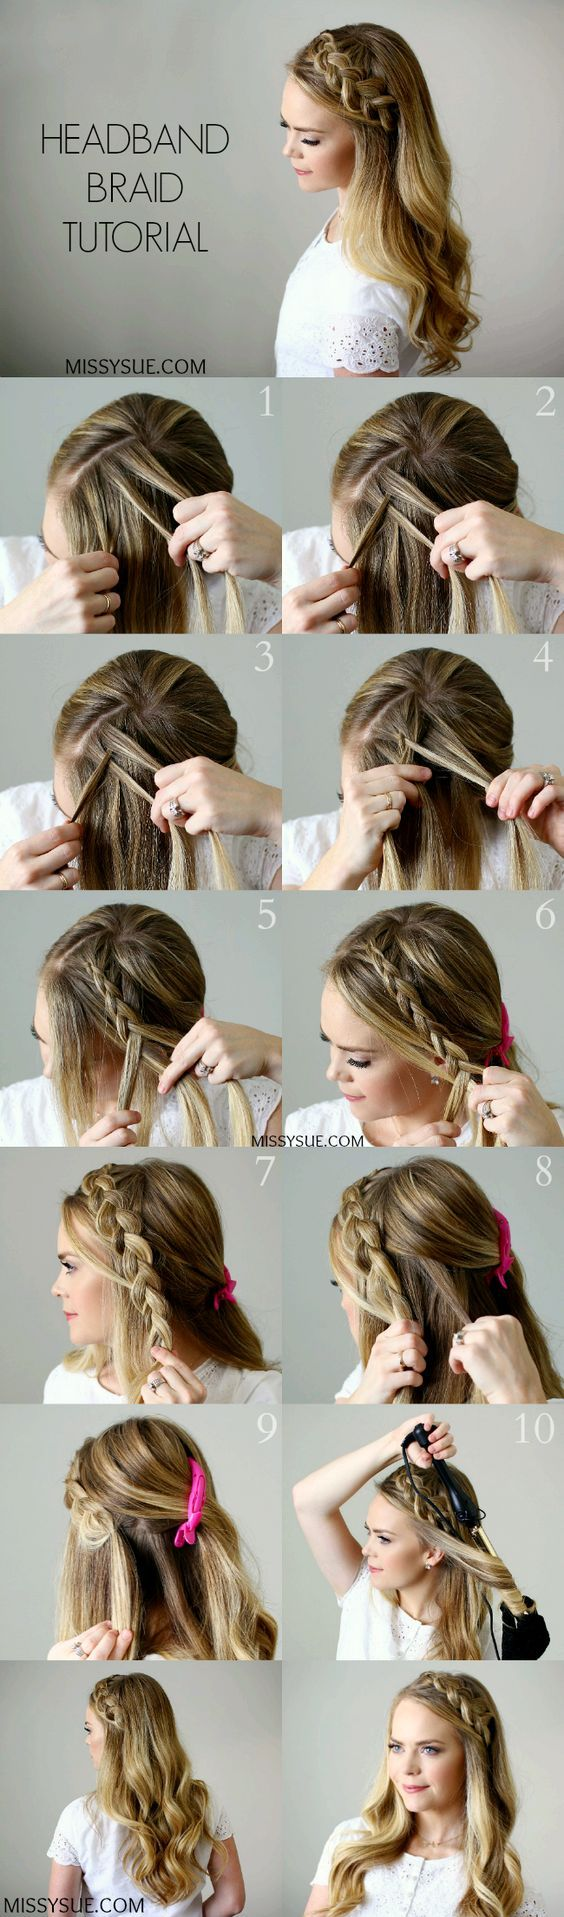 15 Easy Hair Tutorials für lockiges Haar #easyhair